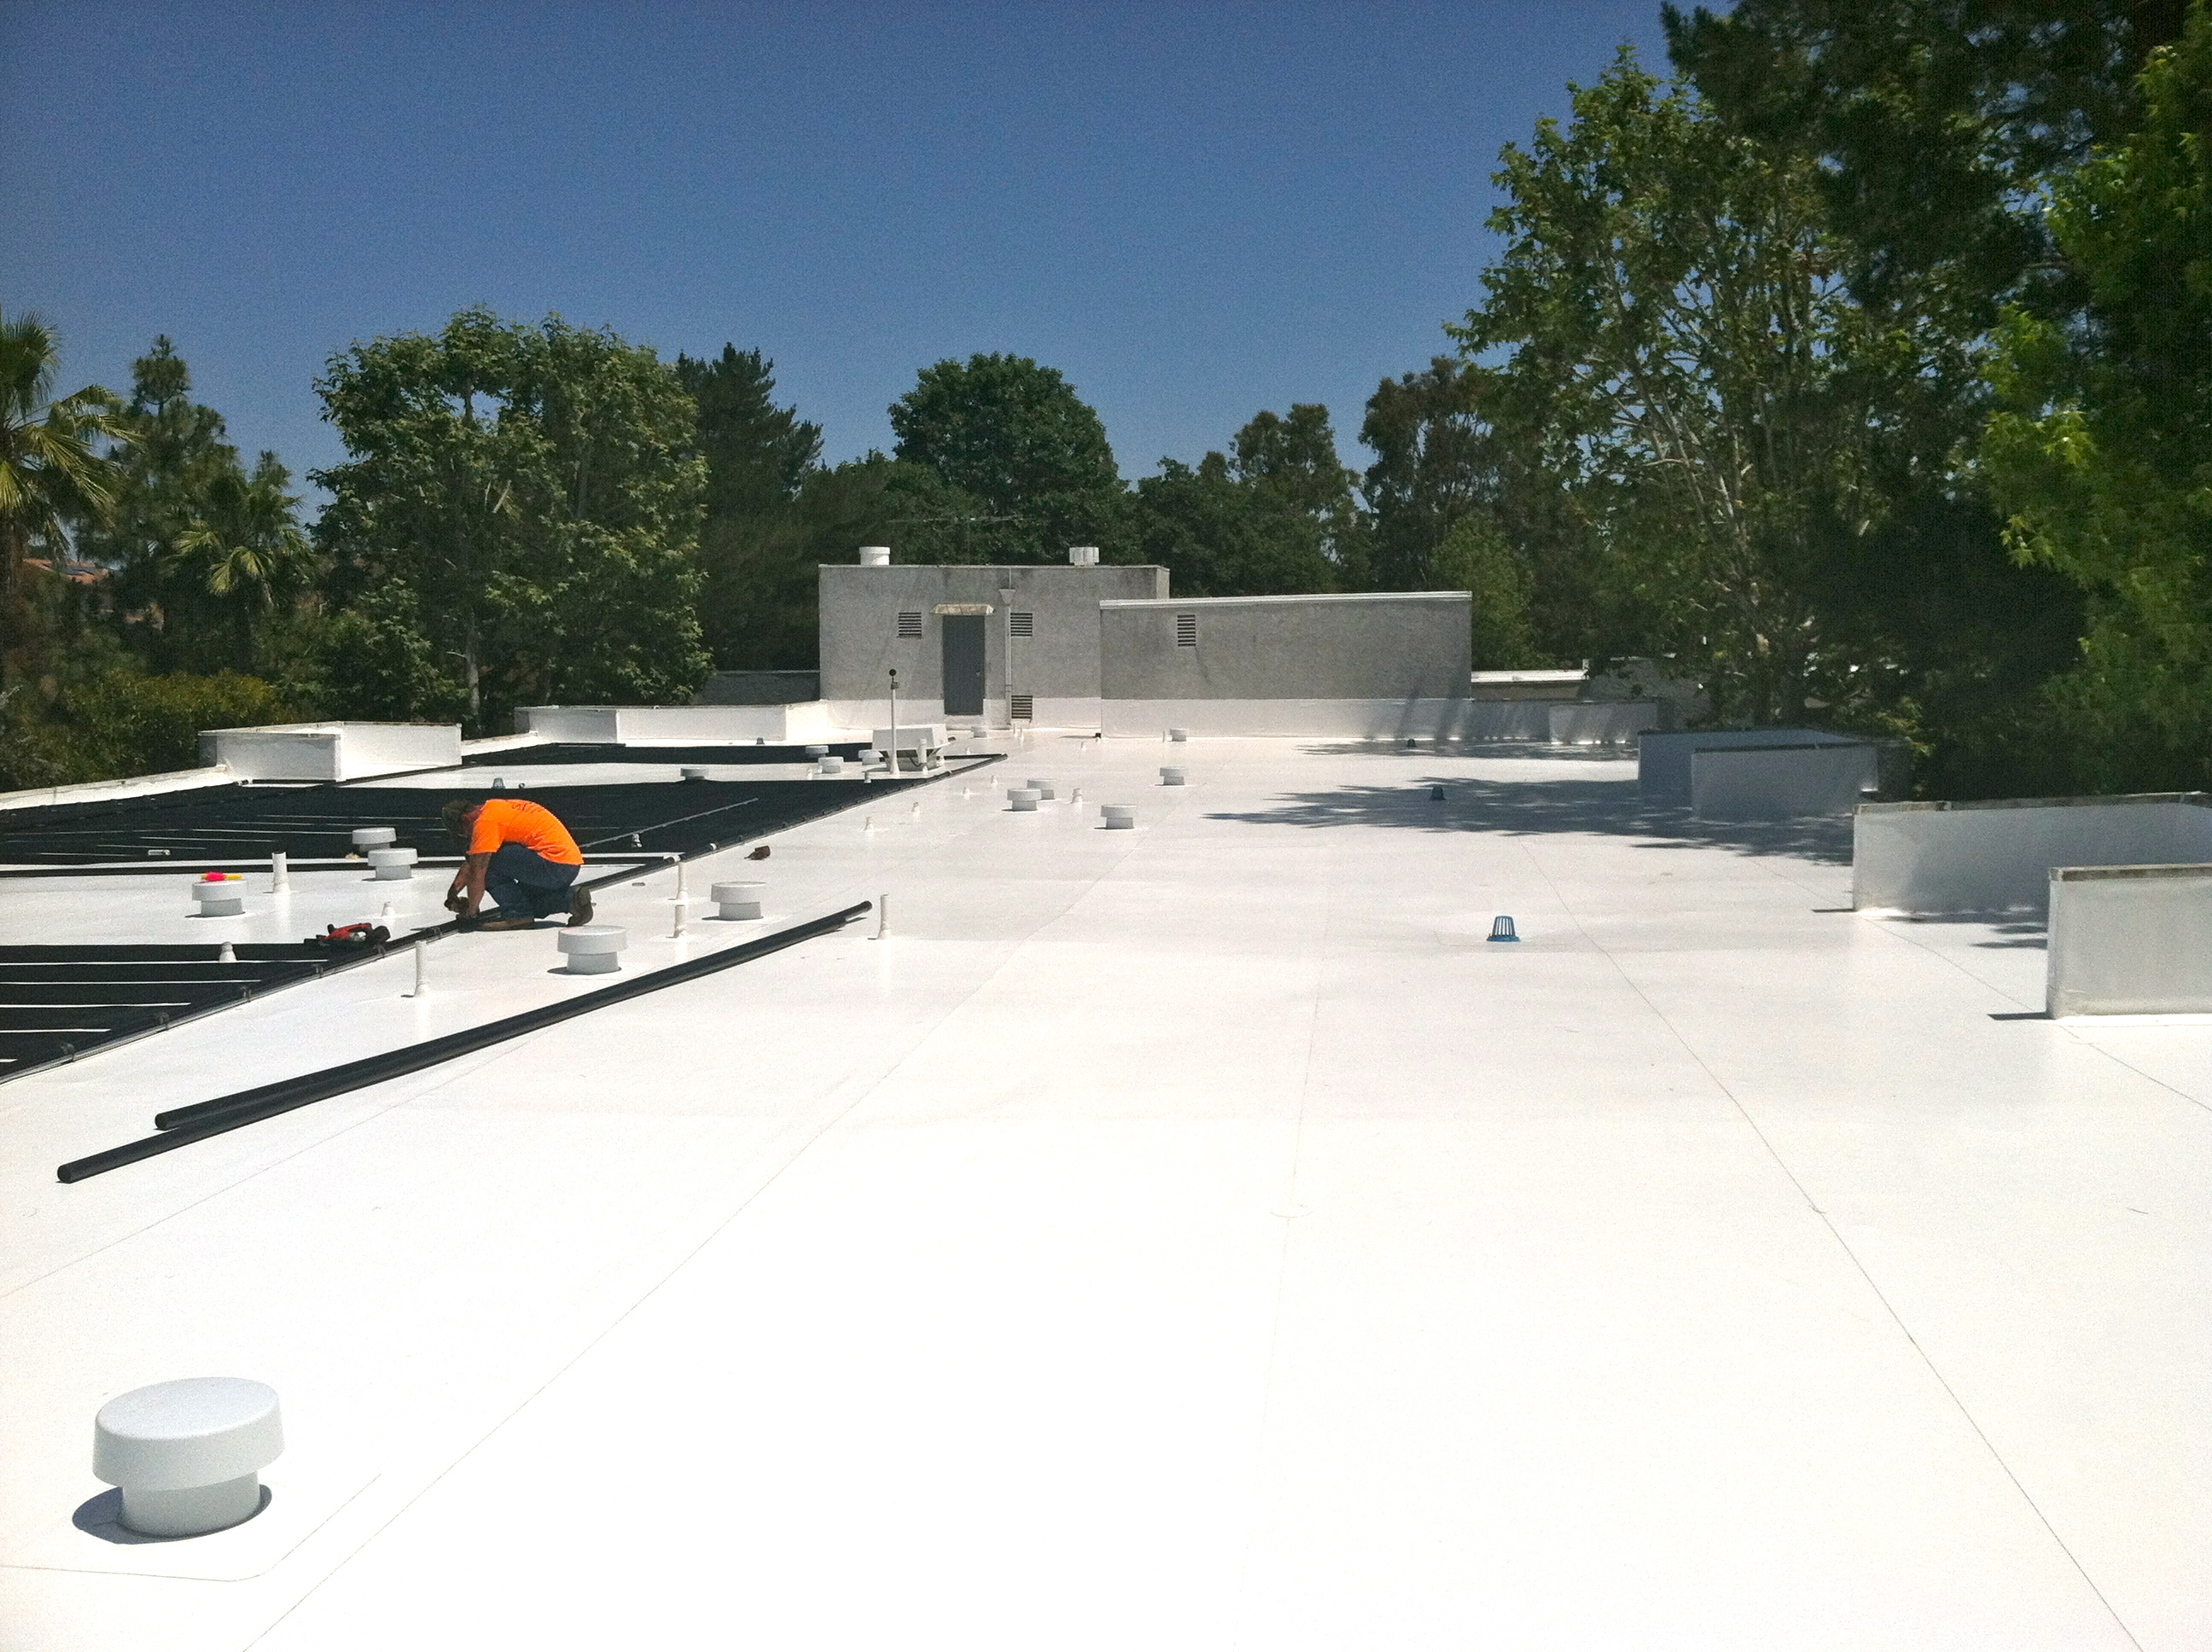 Superb IB Roof System Installed By Chandleru0027s Roofing On The Estates Condominiums  In Rancho Palos Verdes, CA.